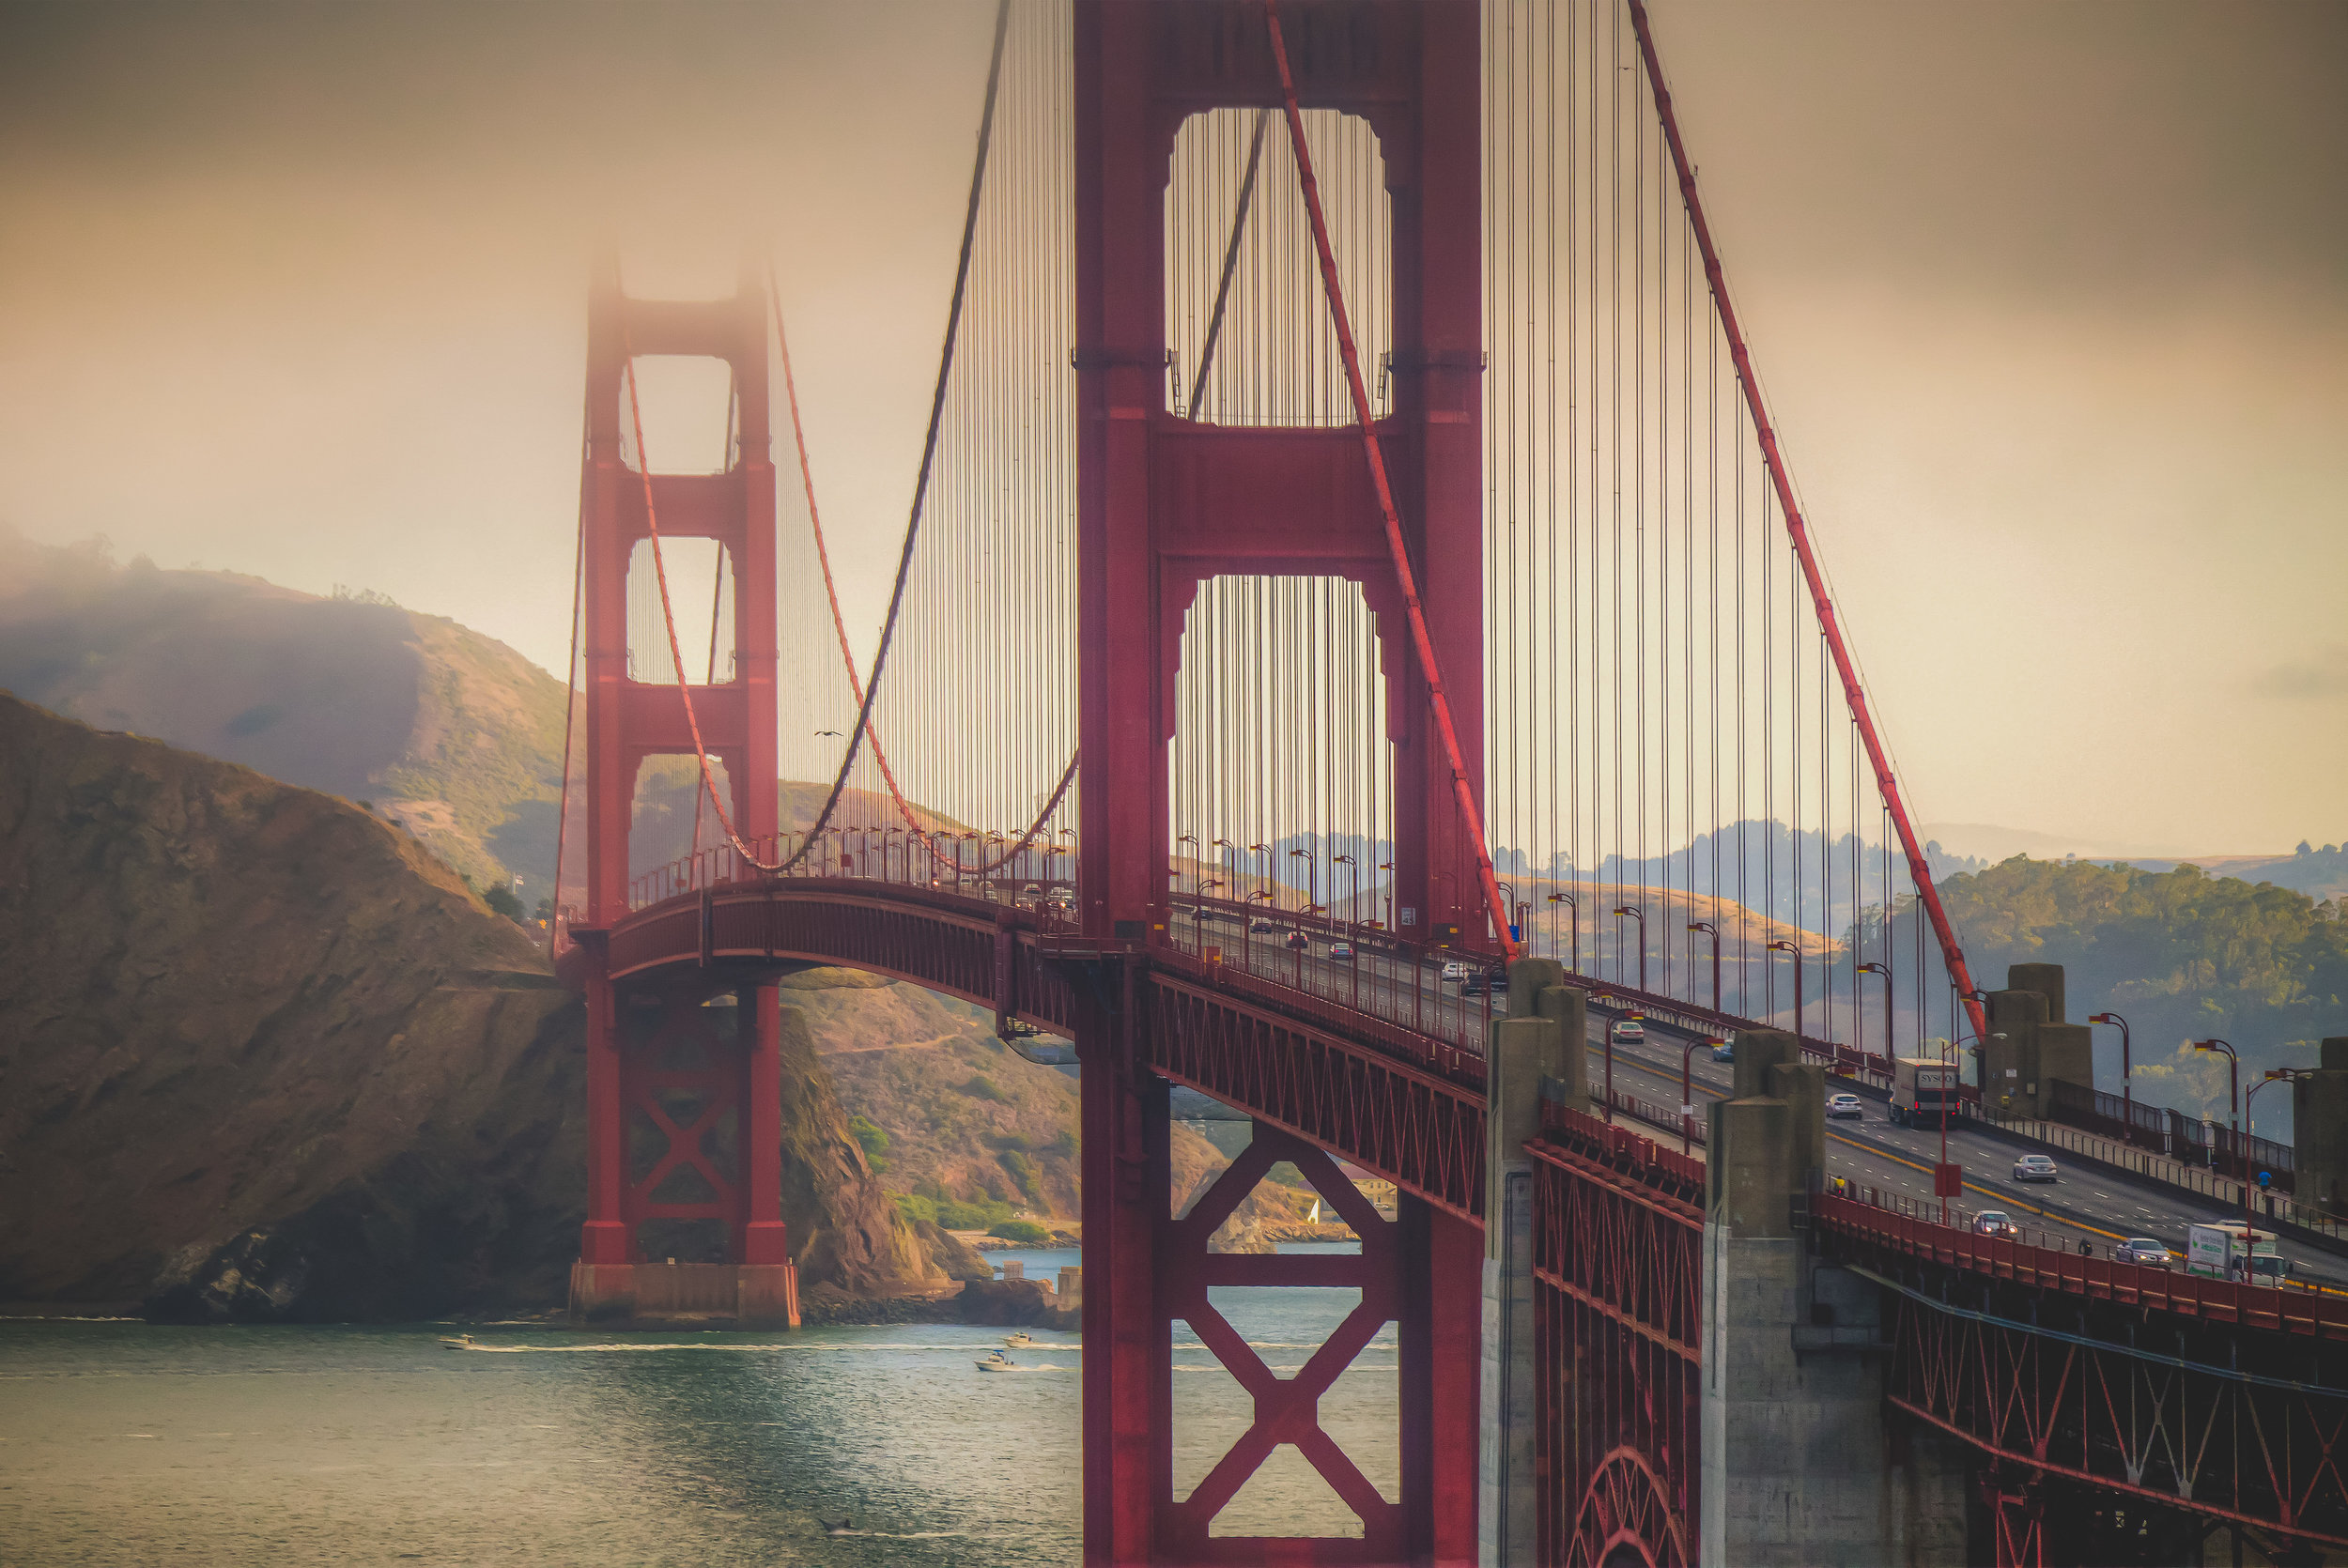 A collection of images taken in the early morning light in San Francisco, California.